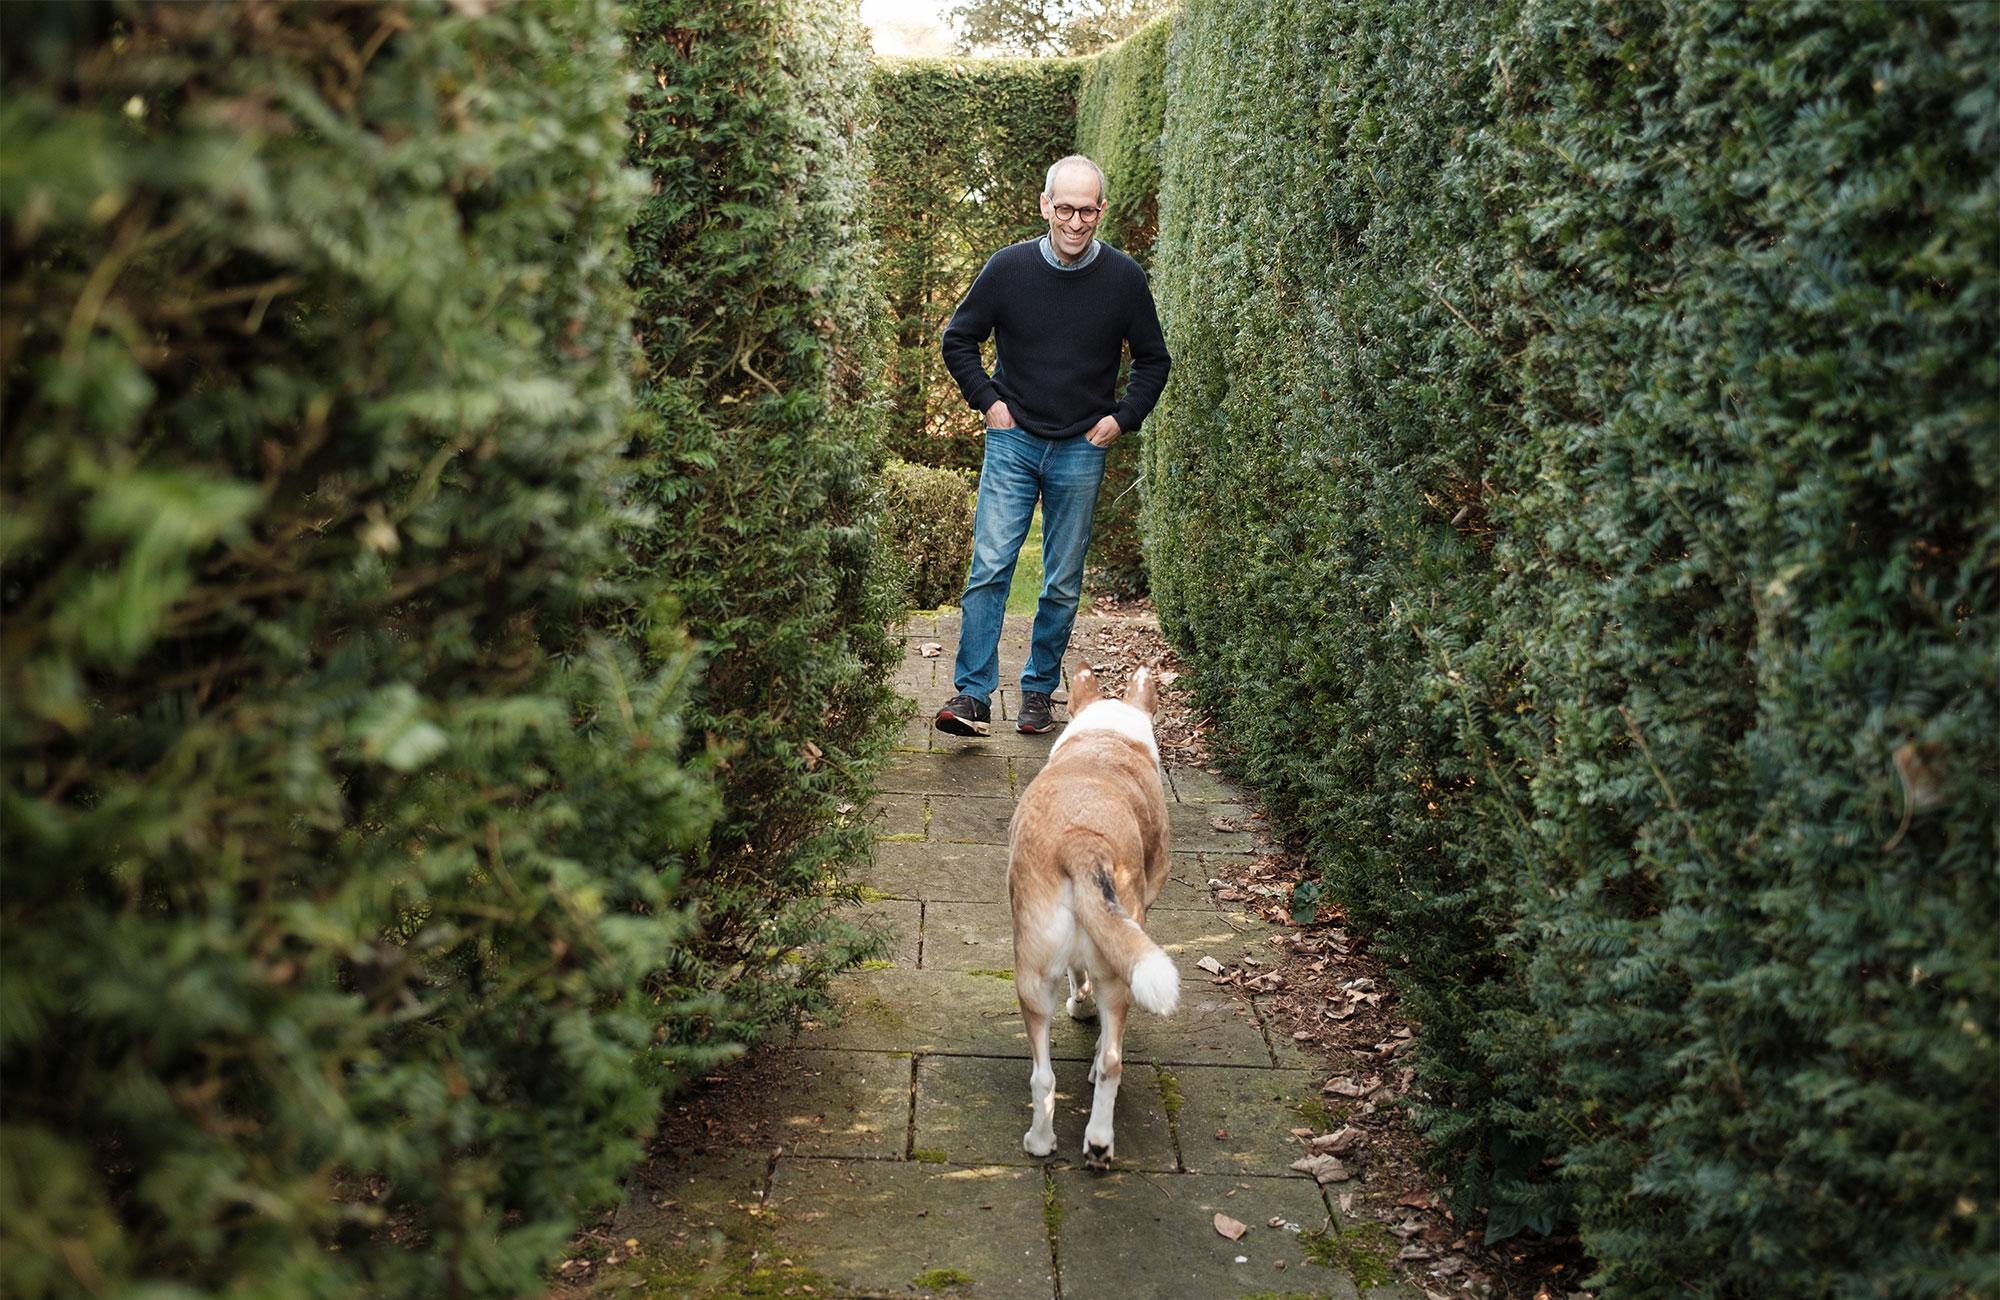 Arik Kershenbaum and his dog standing in a narrow path between tall hedges.